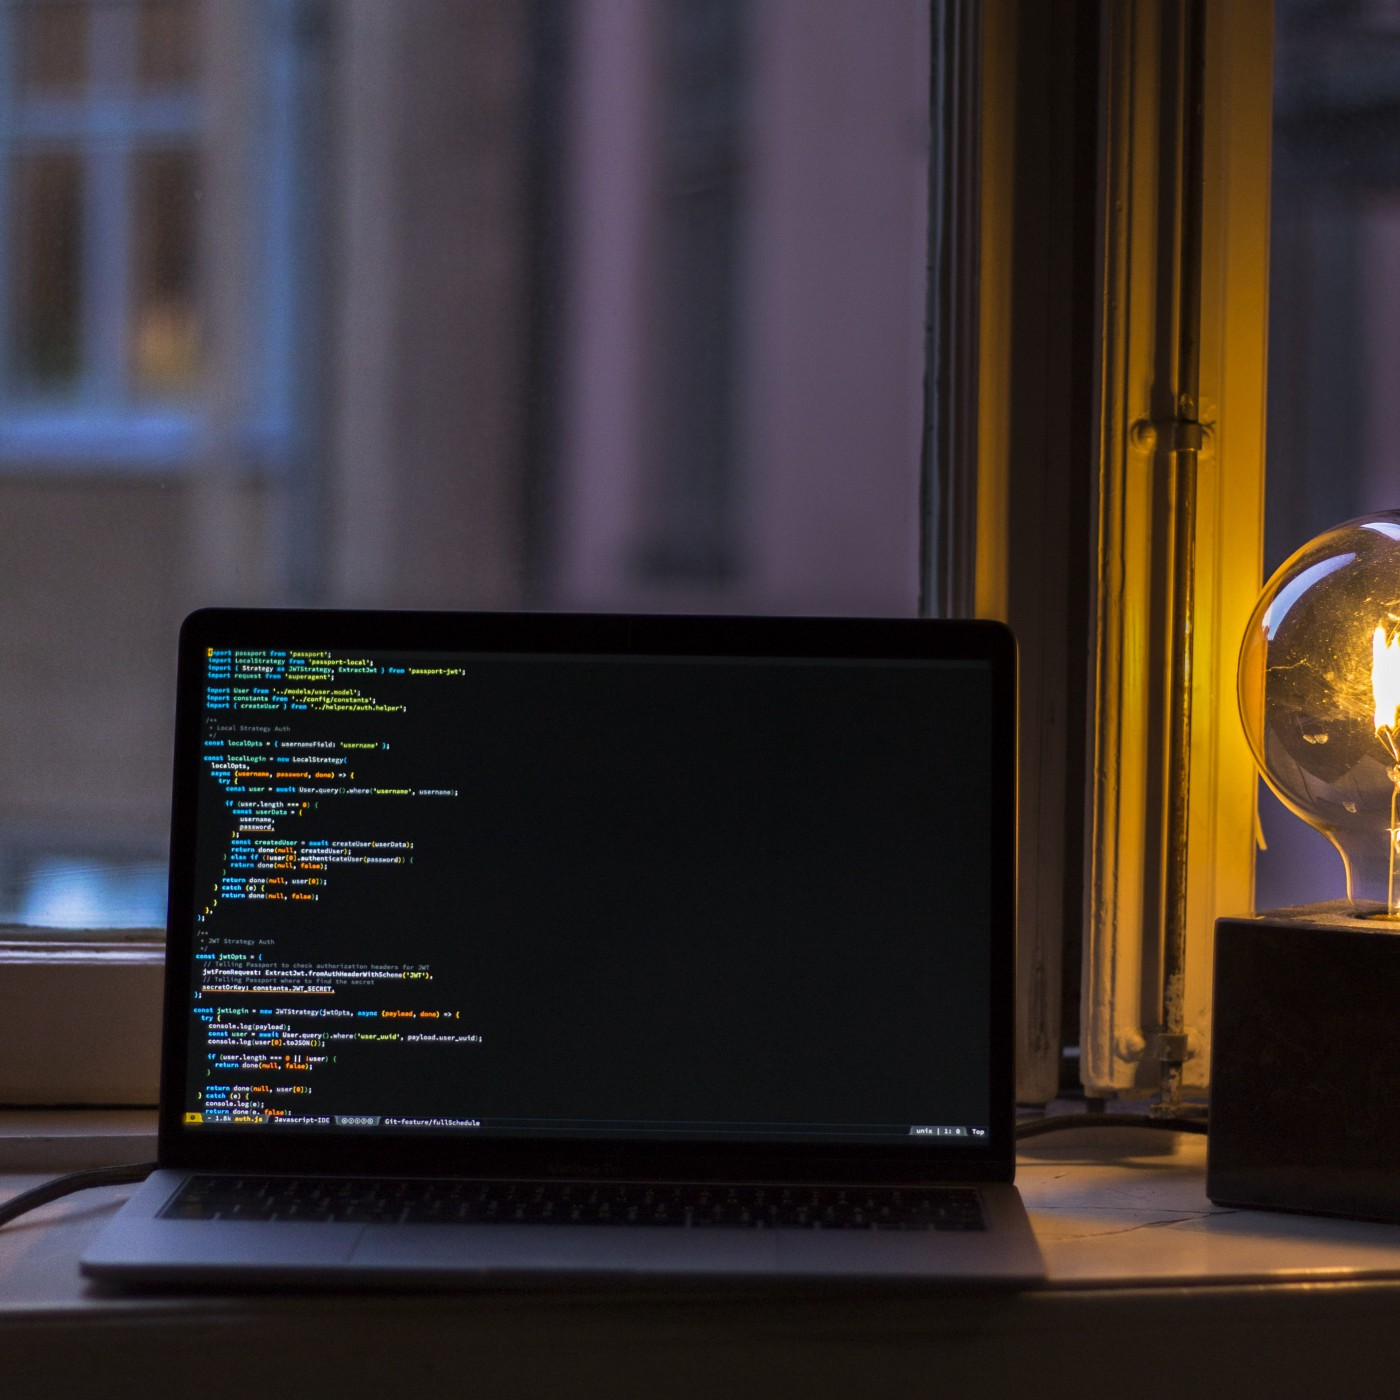 A MacBook and a lamp